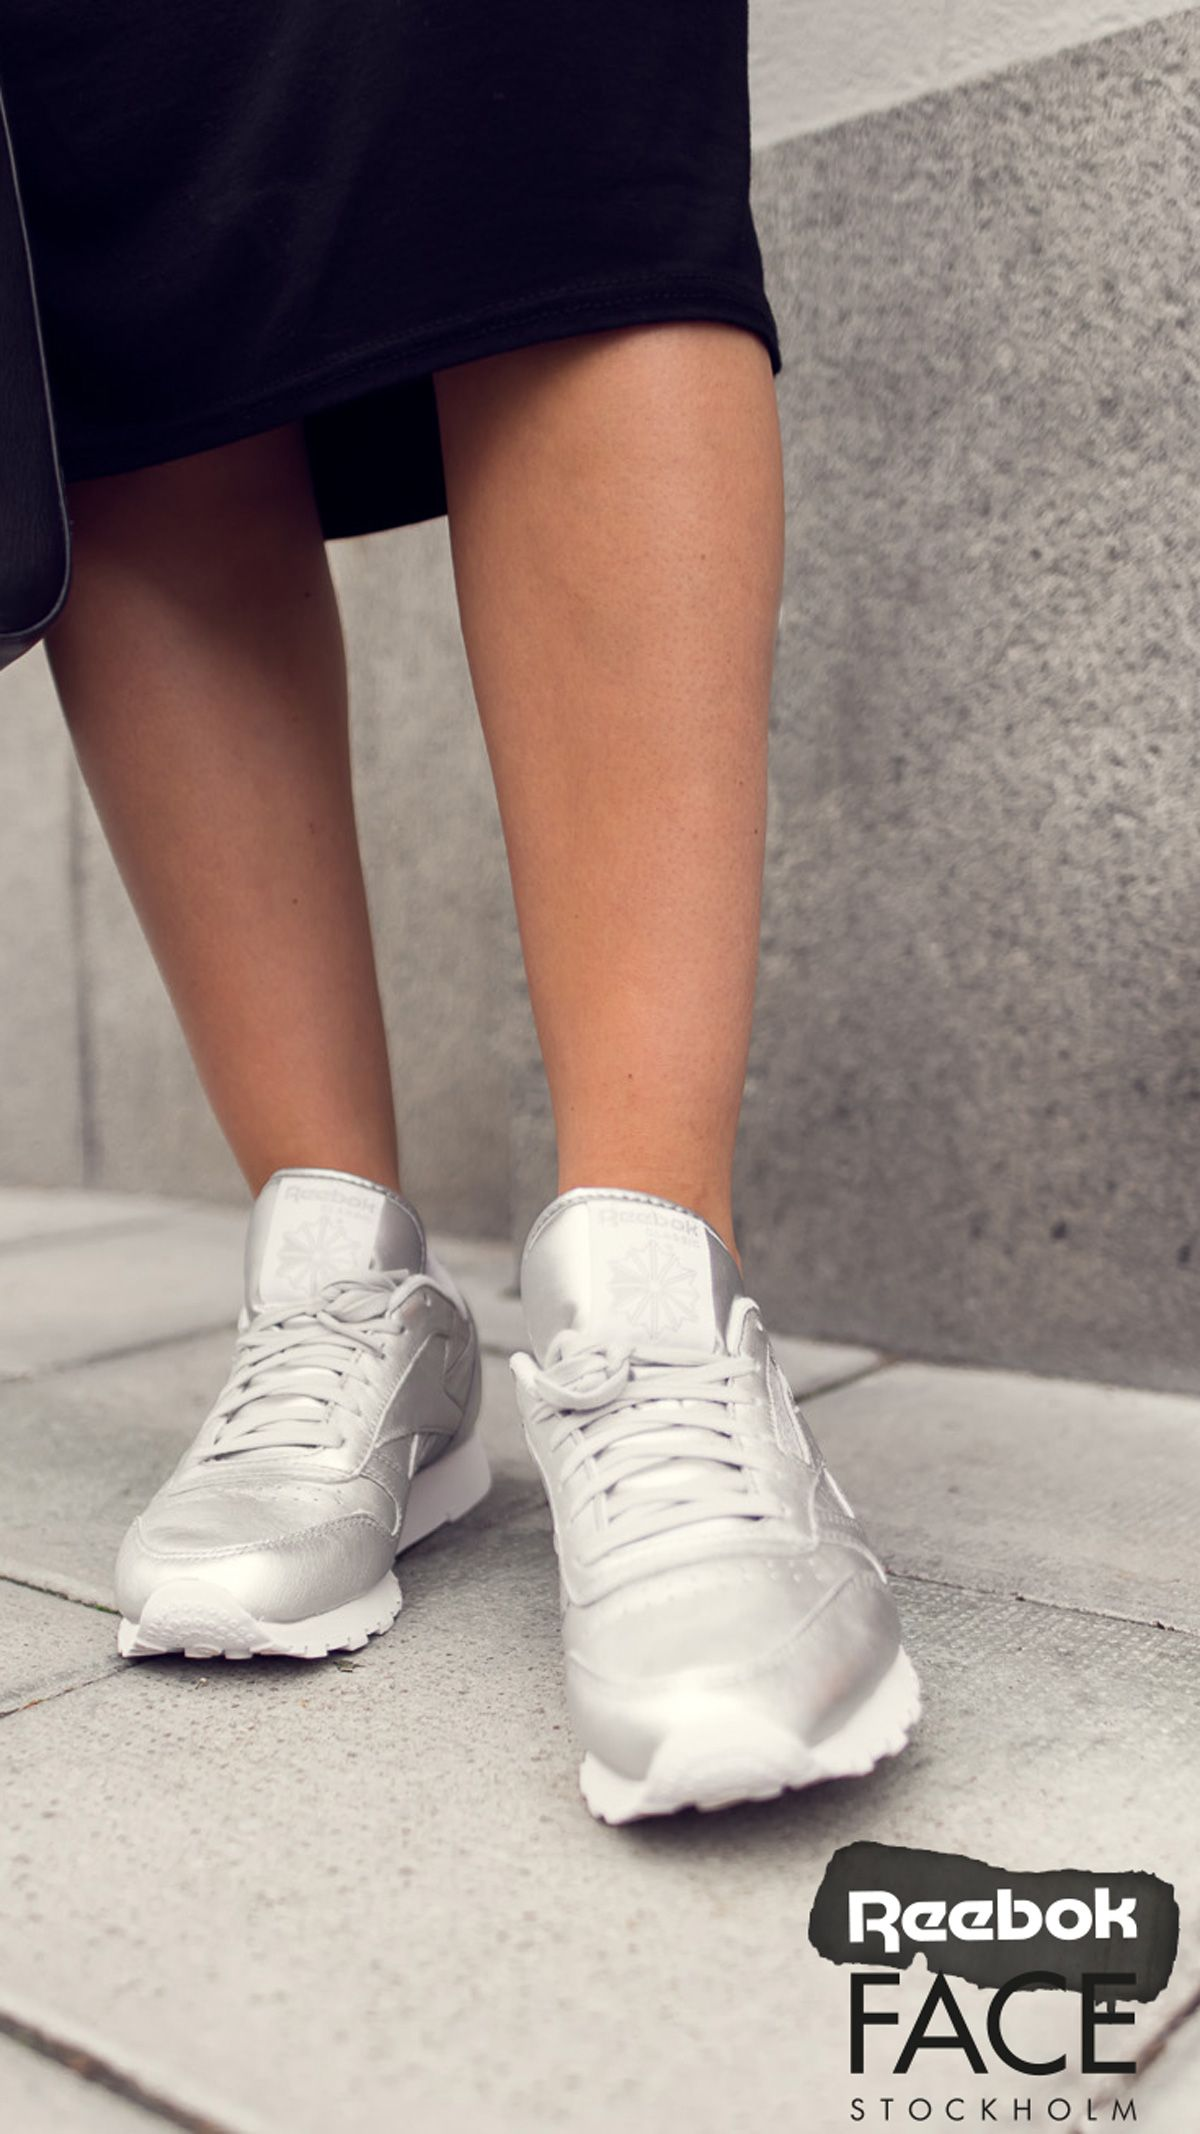 Swedish blogger Lisa Olsson flaunts her strong sneaker game in these silver Reebok X Face Stockholm Classic Leather shoes. #BoldFinishes